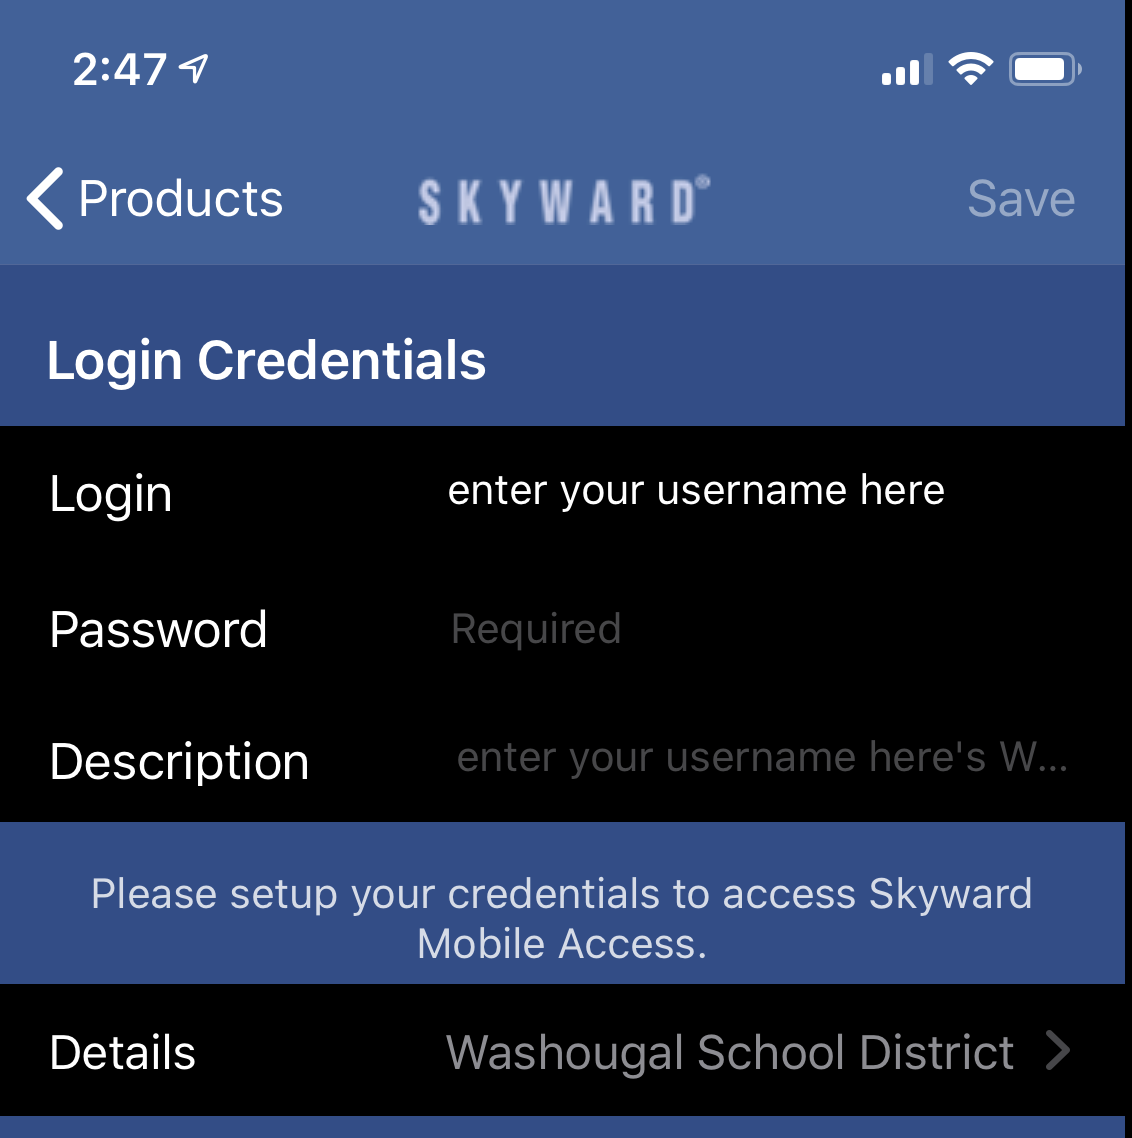 Skyward login page showing password entry dialog